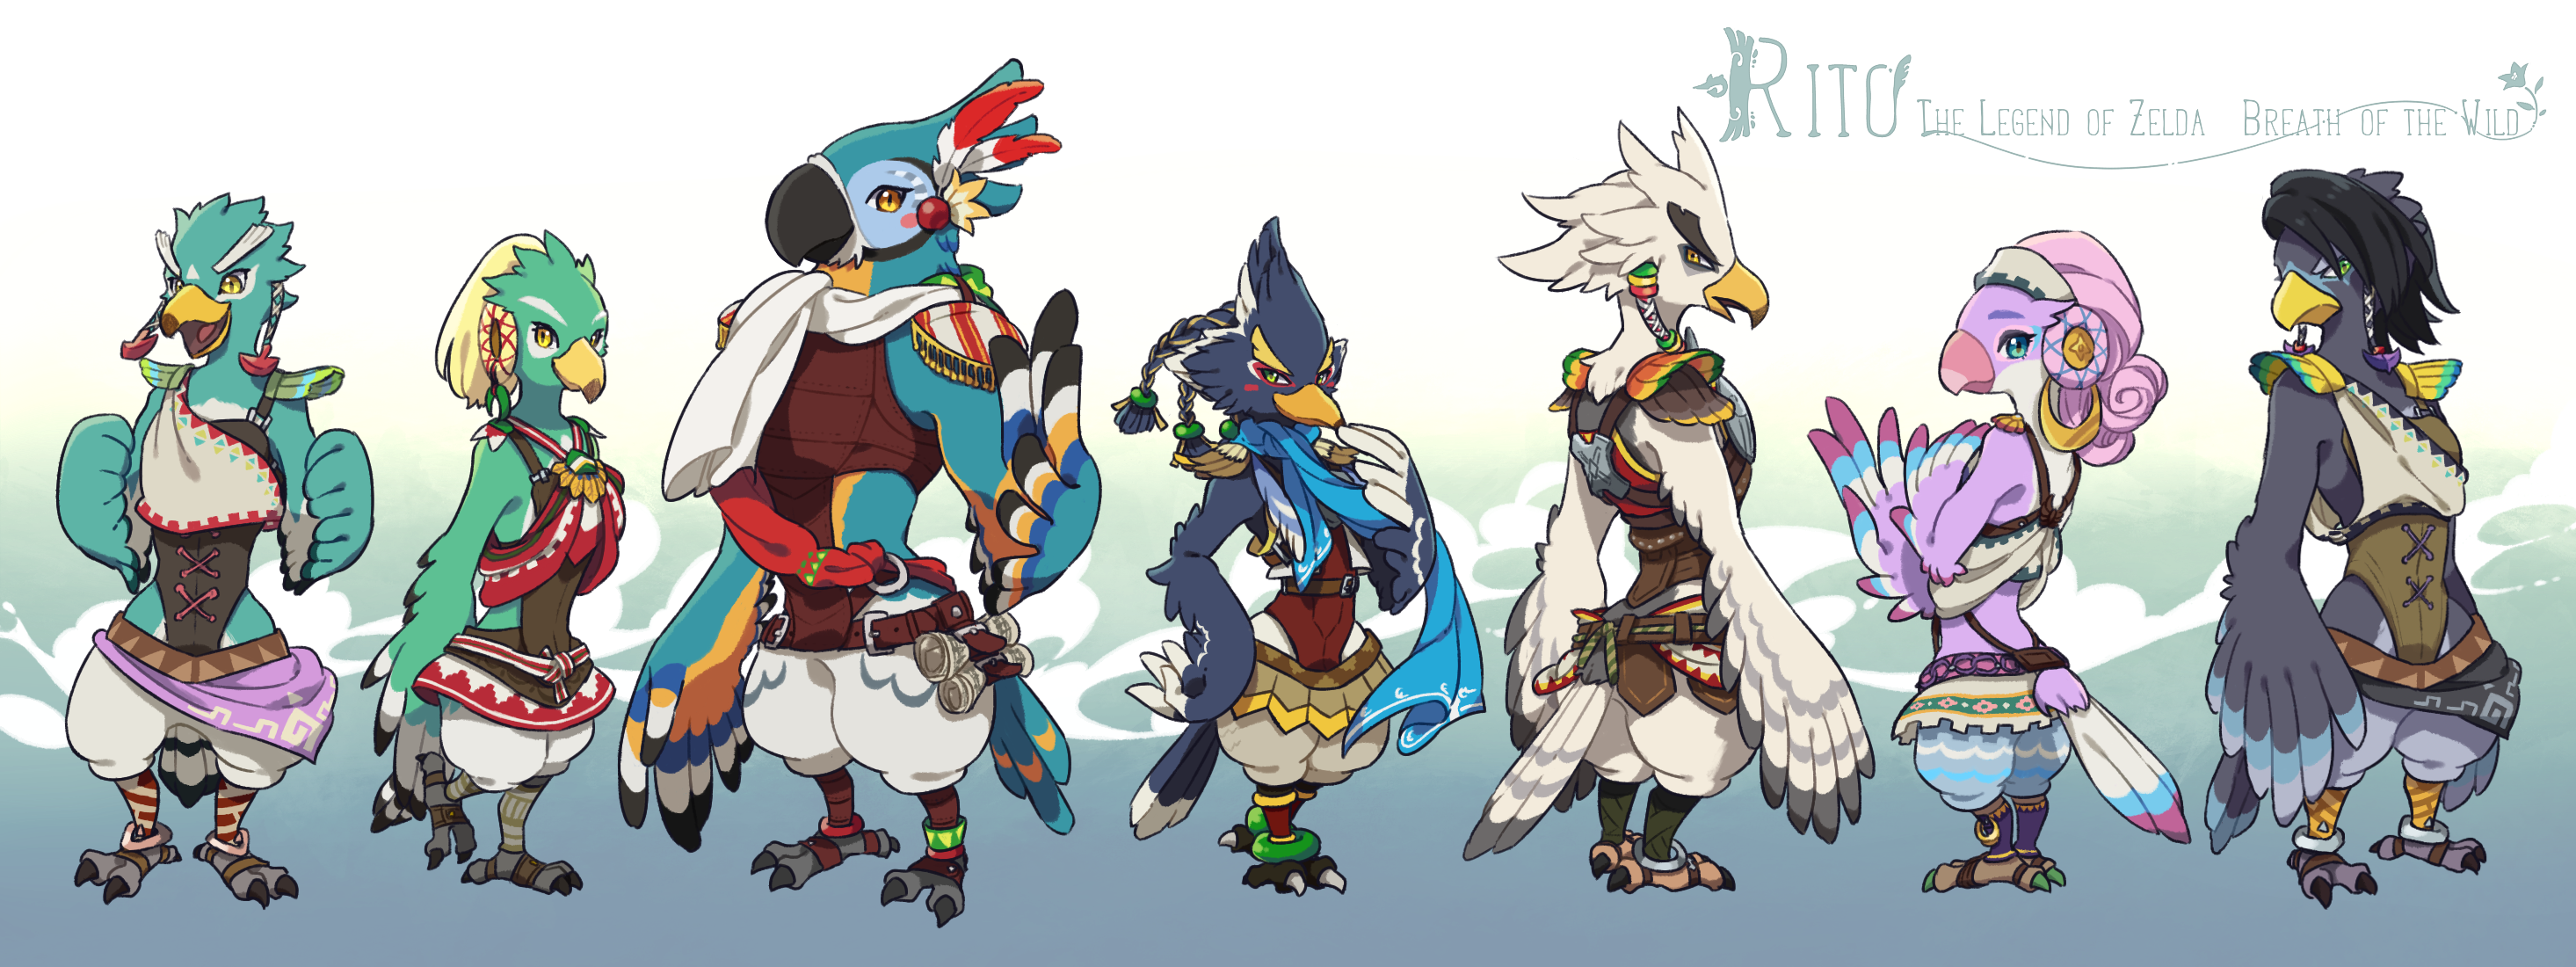 Rito By Ningukt The Legend Of Zelda Breath Of The Wild Know